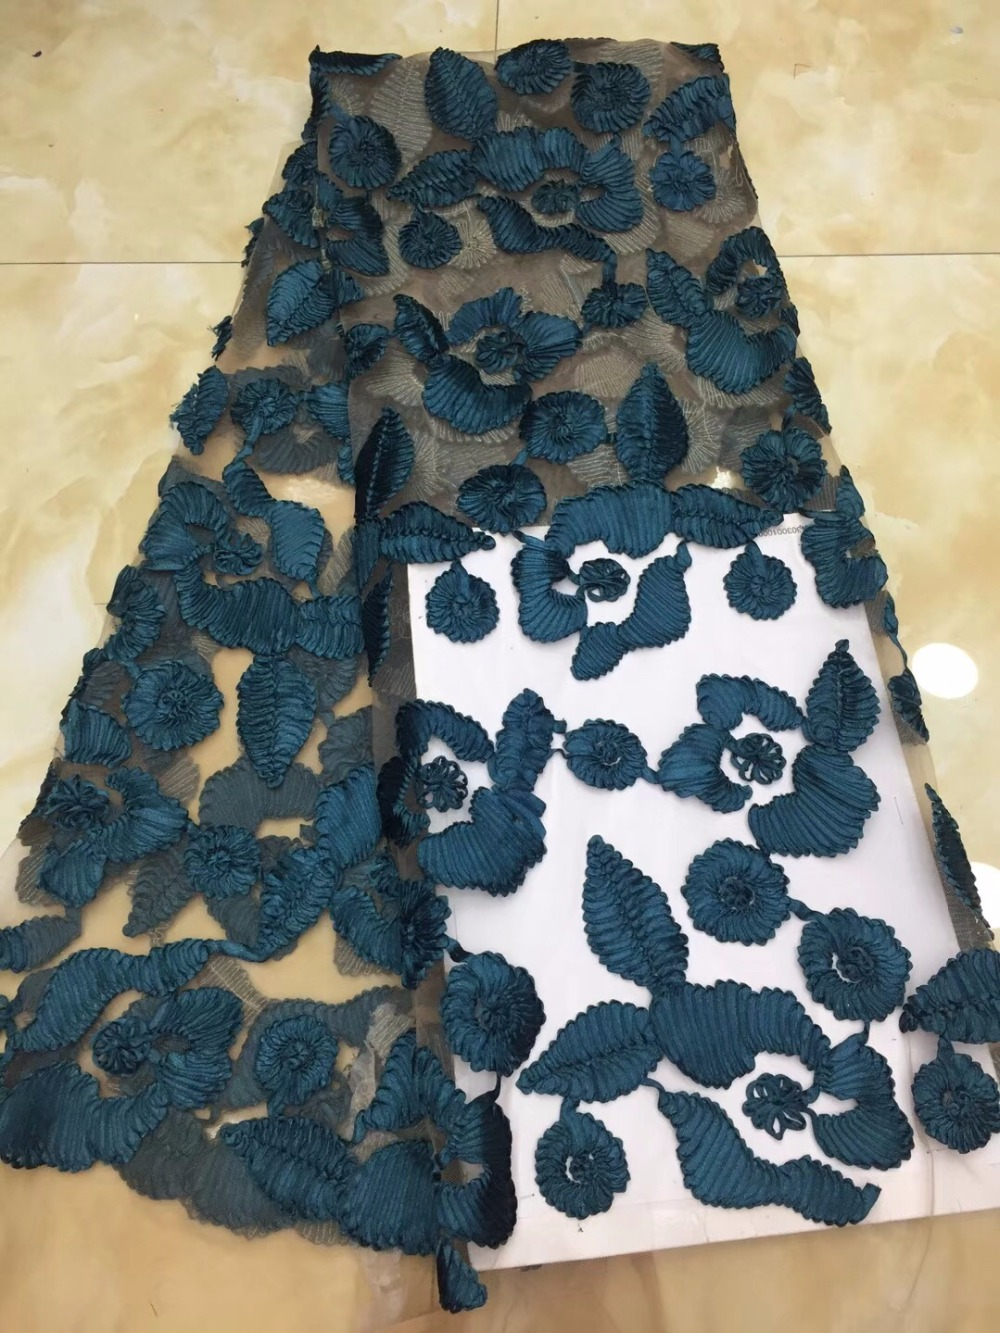 Fashion design African Lace fabrics Embroidered mesh tulle Lace /High Quality guipure lace Fabrics for weddingFashion design African Lace fabrics Embroidered mesh tulle Lace /High Quality guipure lace Fabrics for wedding